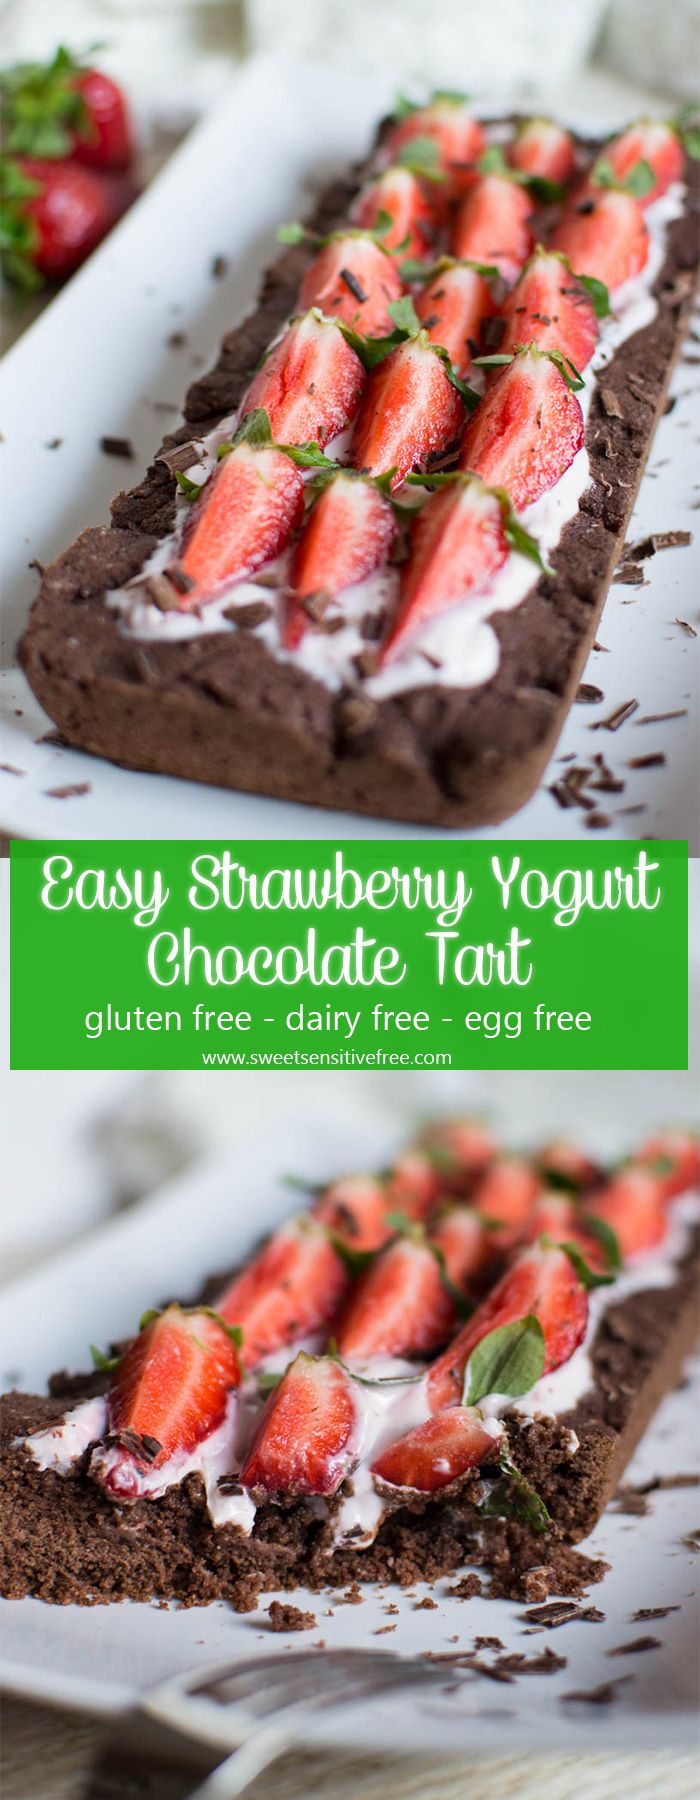 Save this easy recipe for a great gluten/dairy/egg free chocolate tart crust to top with anything you want! Yogurt, nut spreads, fresh fruit, jam! You will just love this vegan shortbread crust!